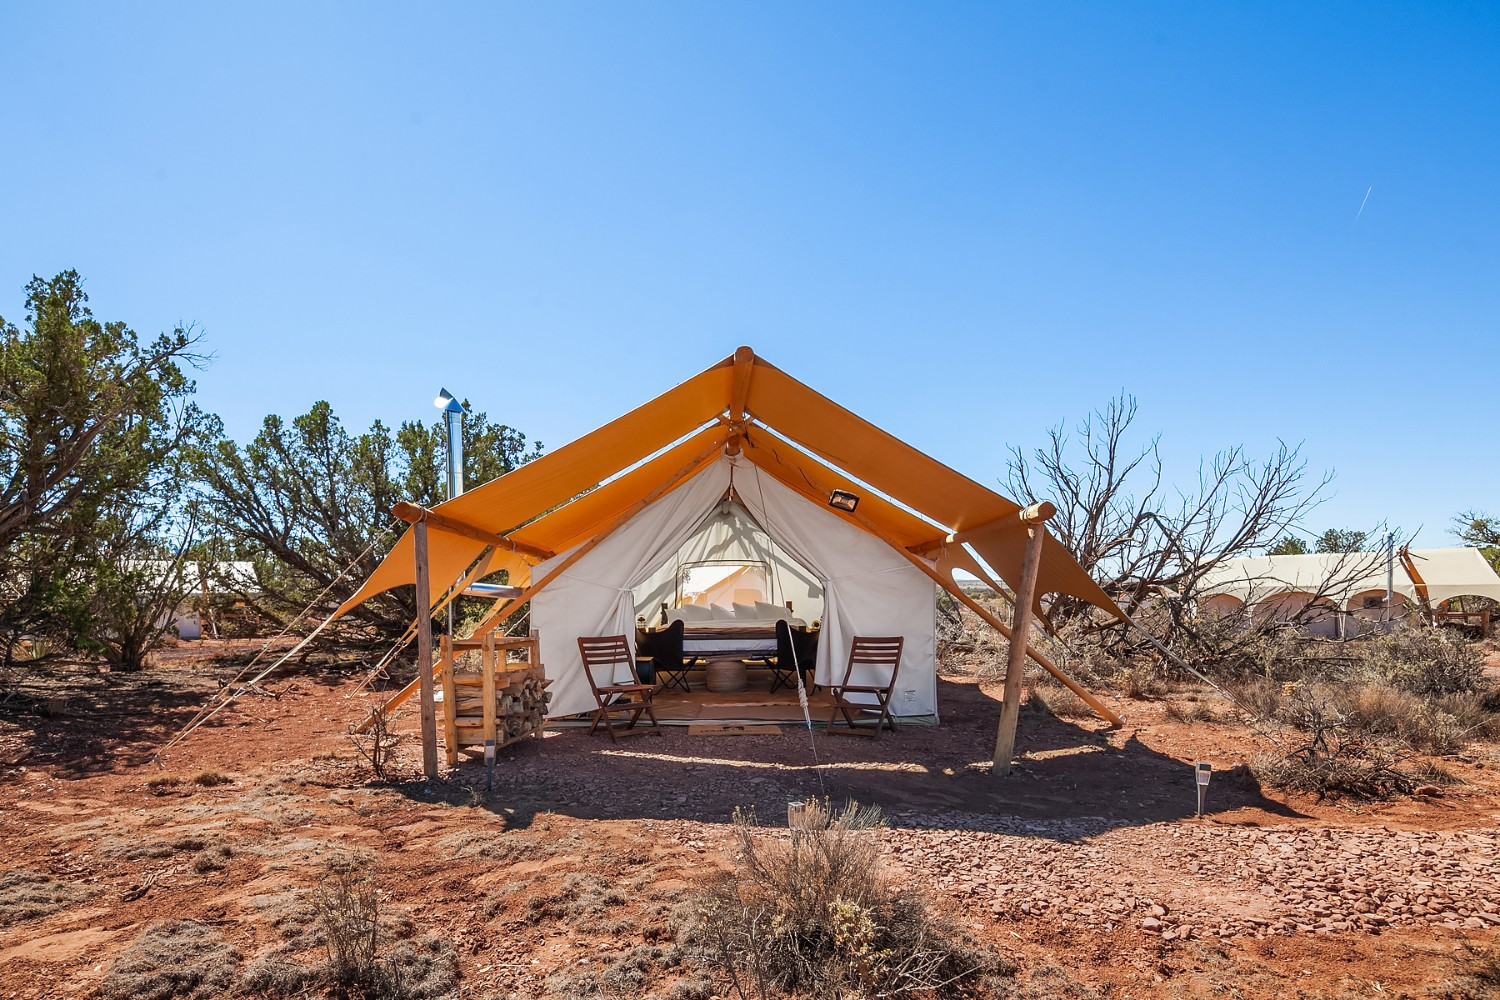 Sleep in a tent next to the Grand Canyon at this luxury